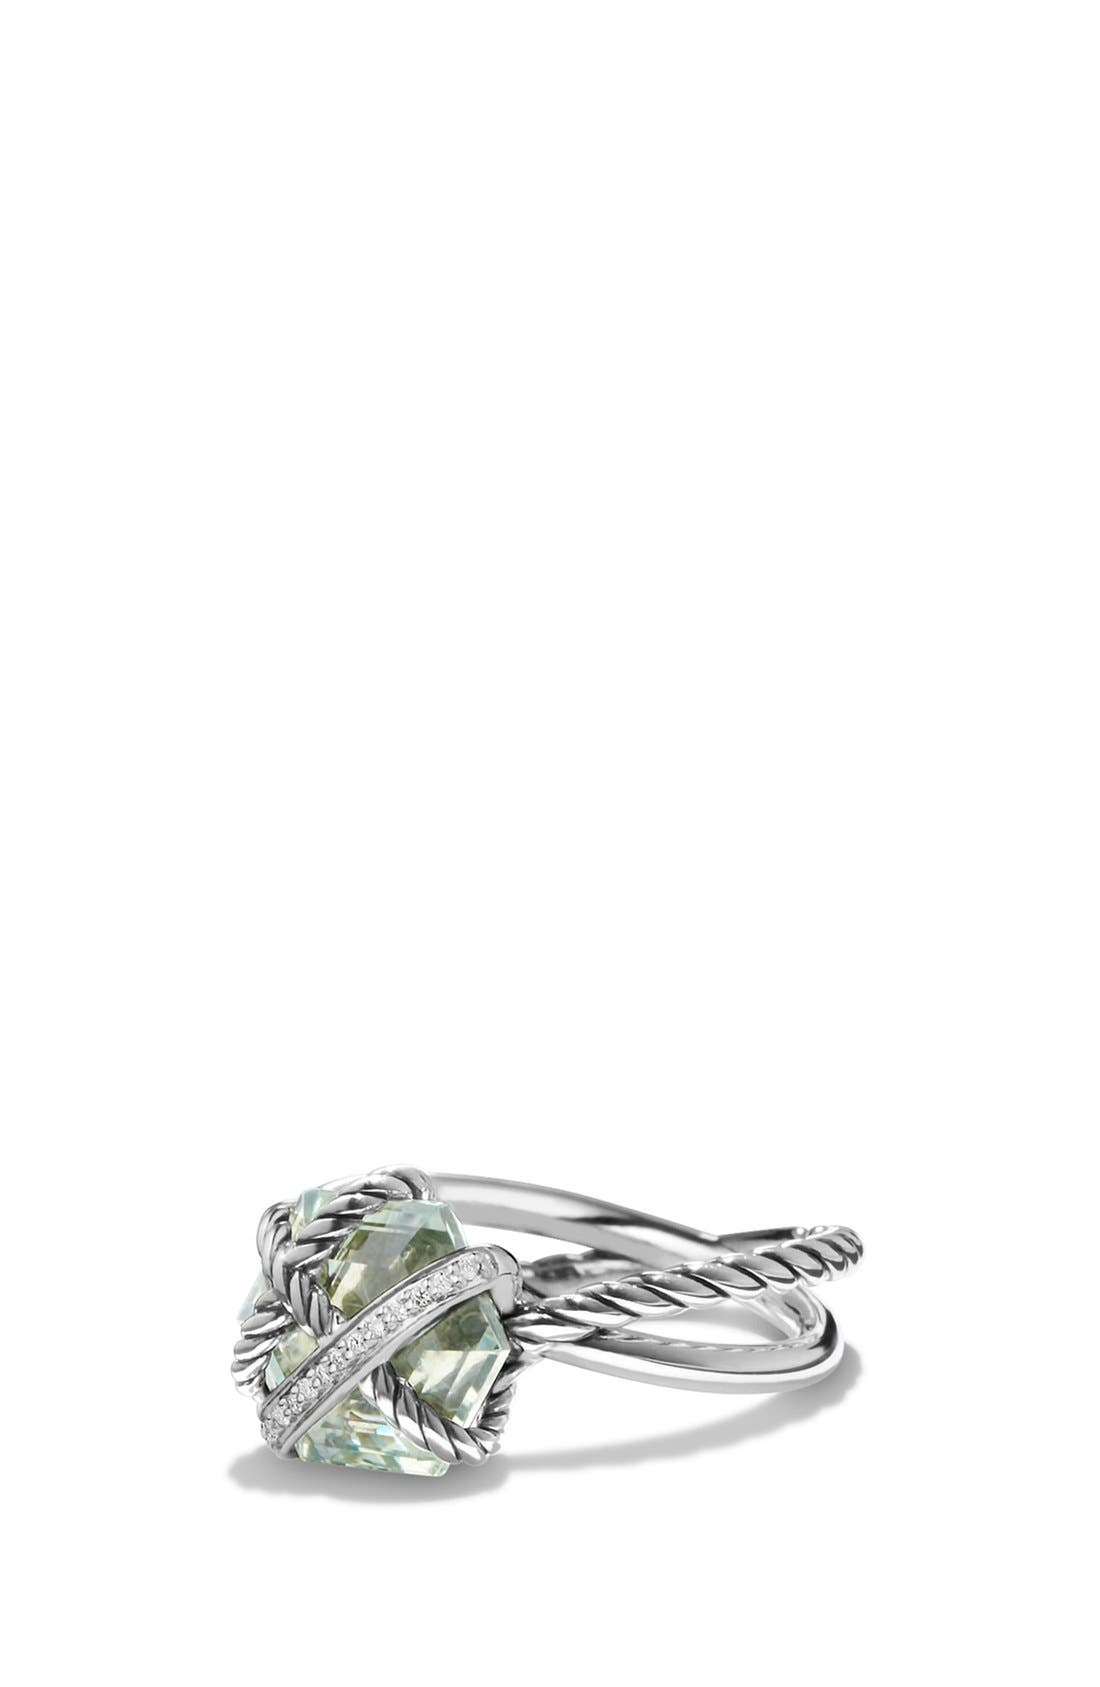 DAVID YURMAN Cable Wrap Ring with Semiprecious Stone